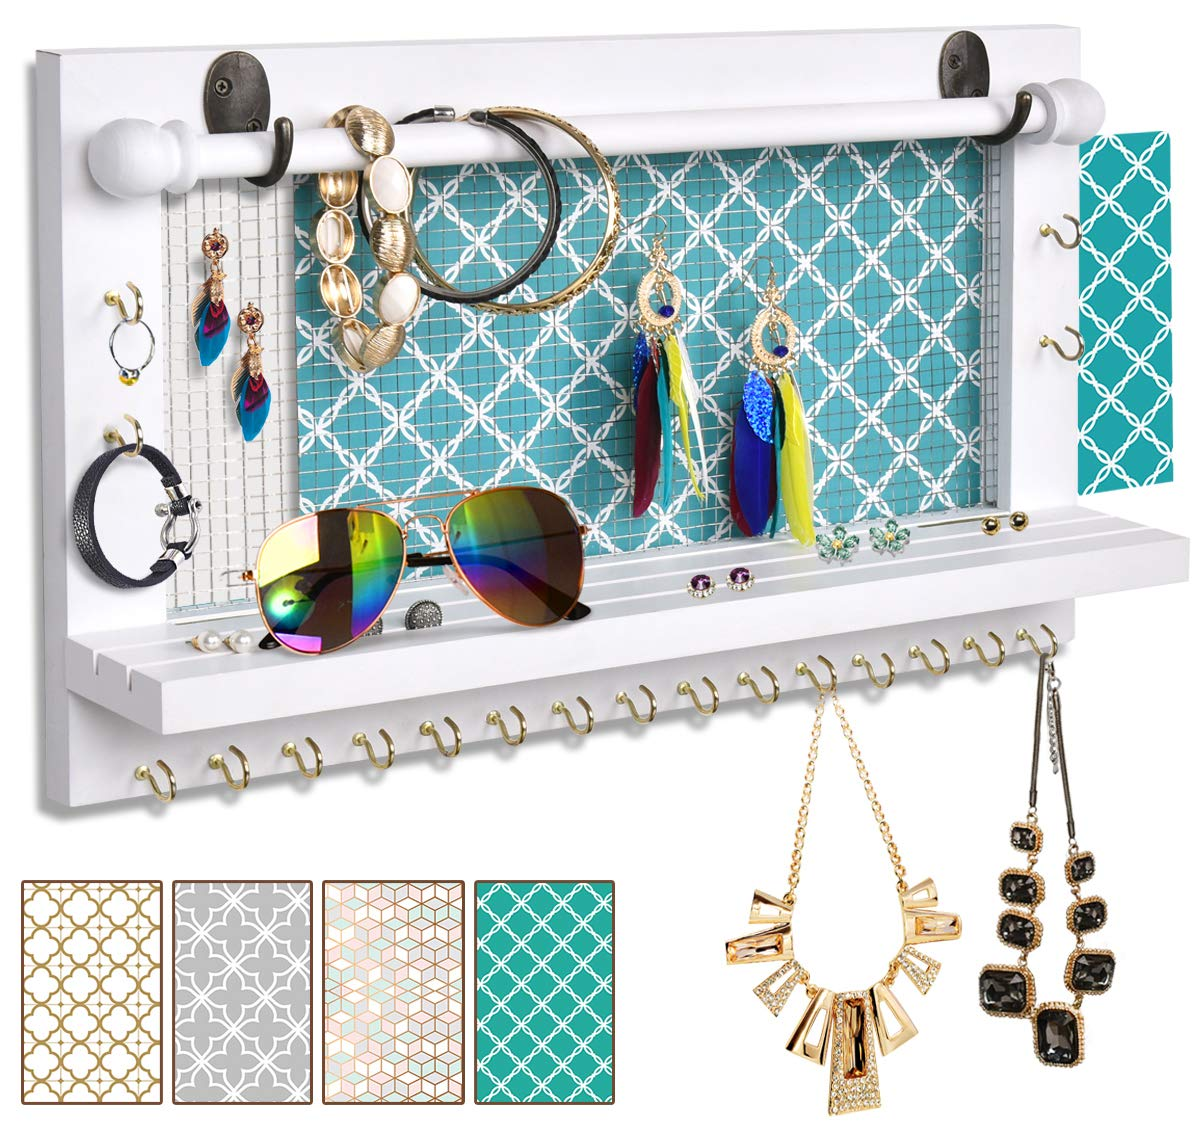 Wall-Mounted Mesh Jewelry Organizer with hanging hooks for ...